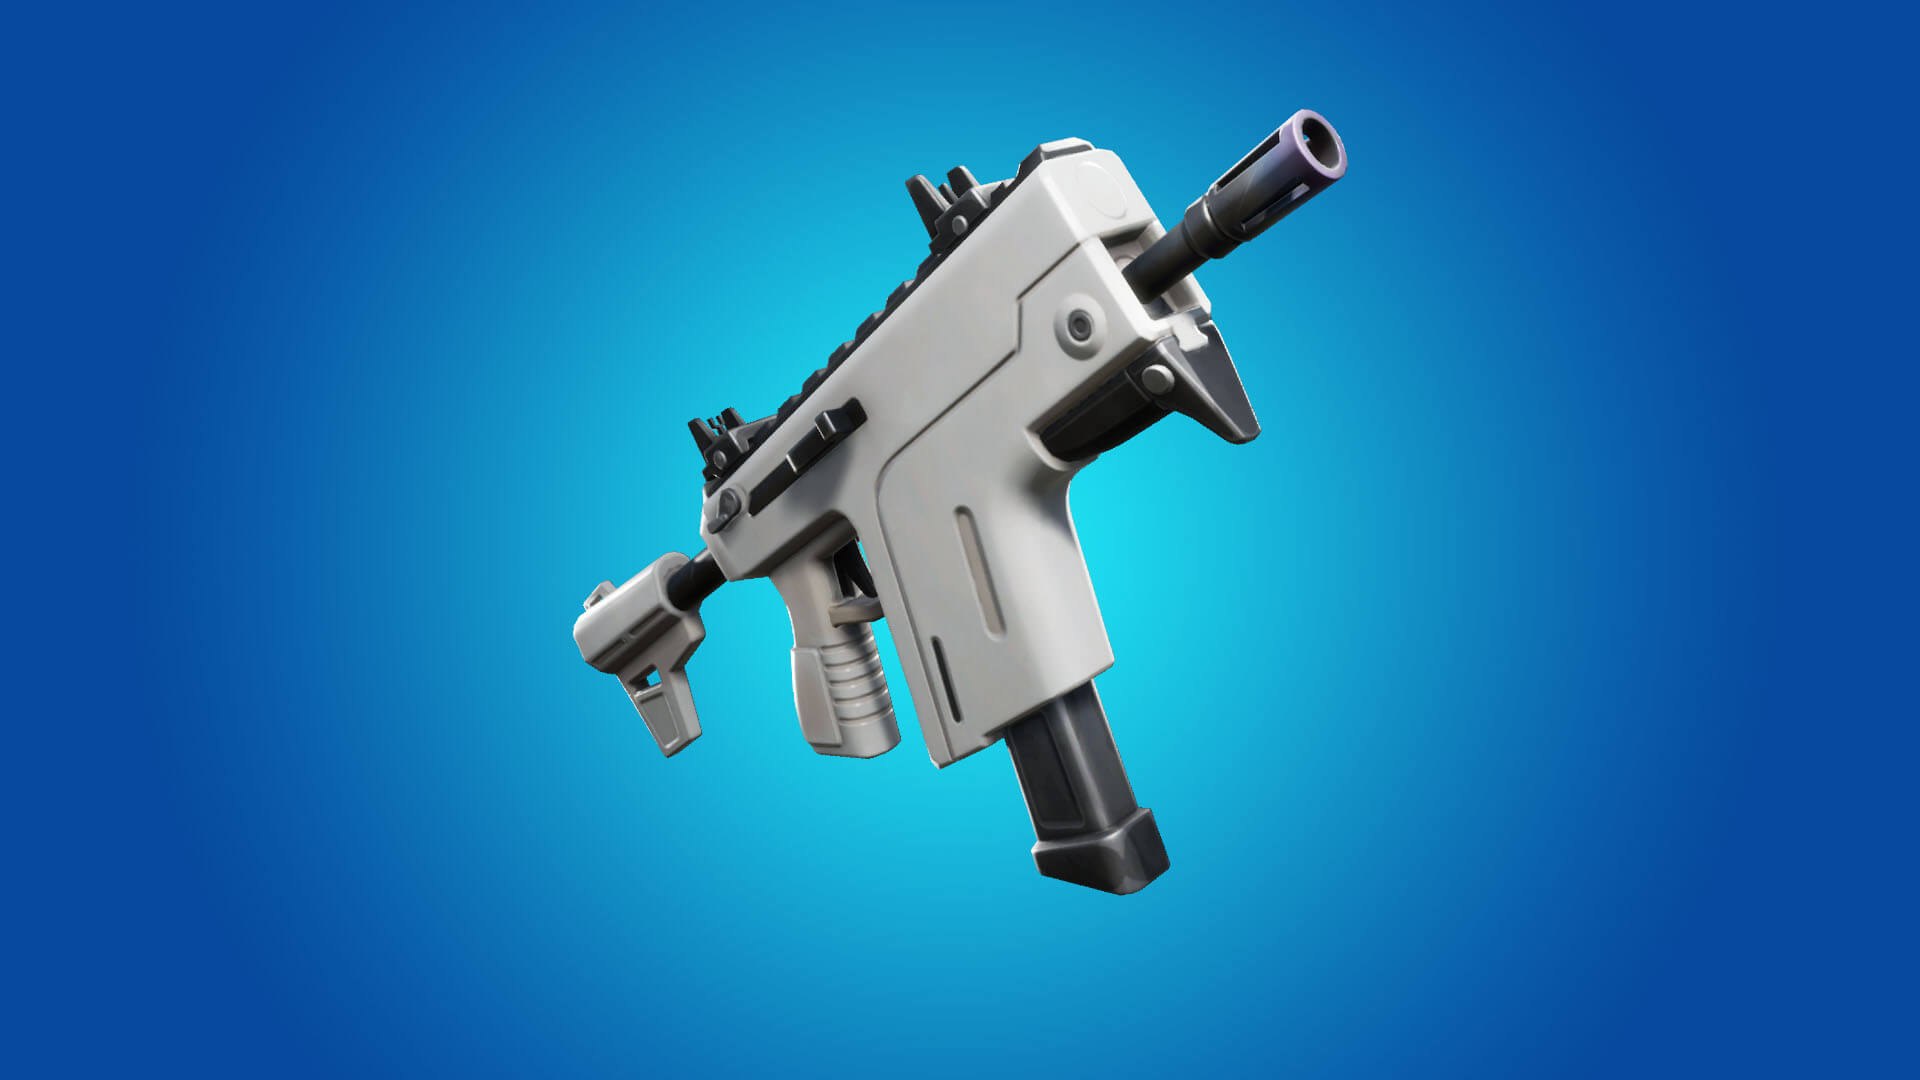 Here's Fortnite's current loot pool